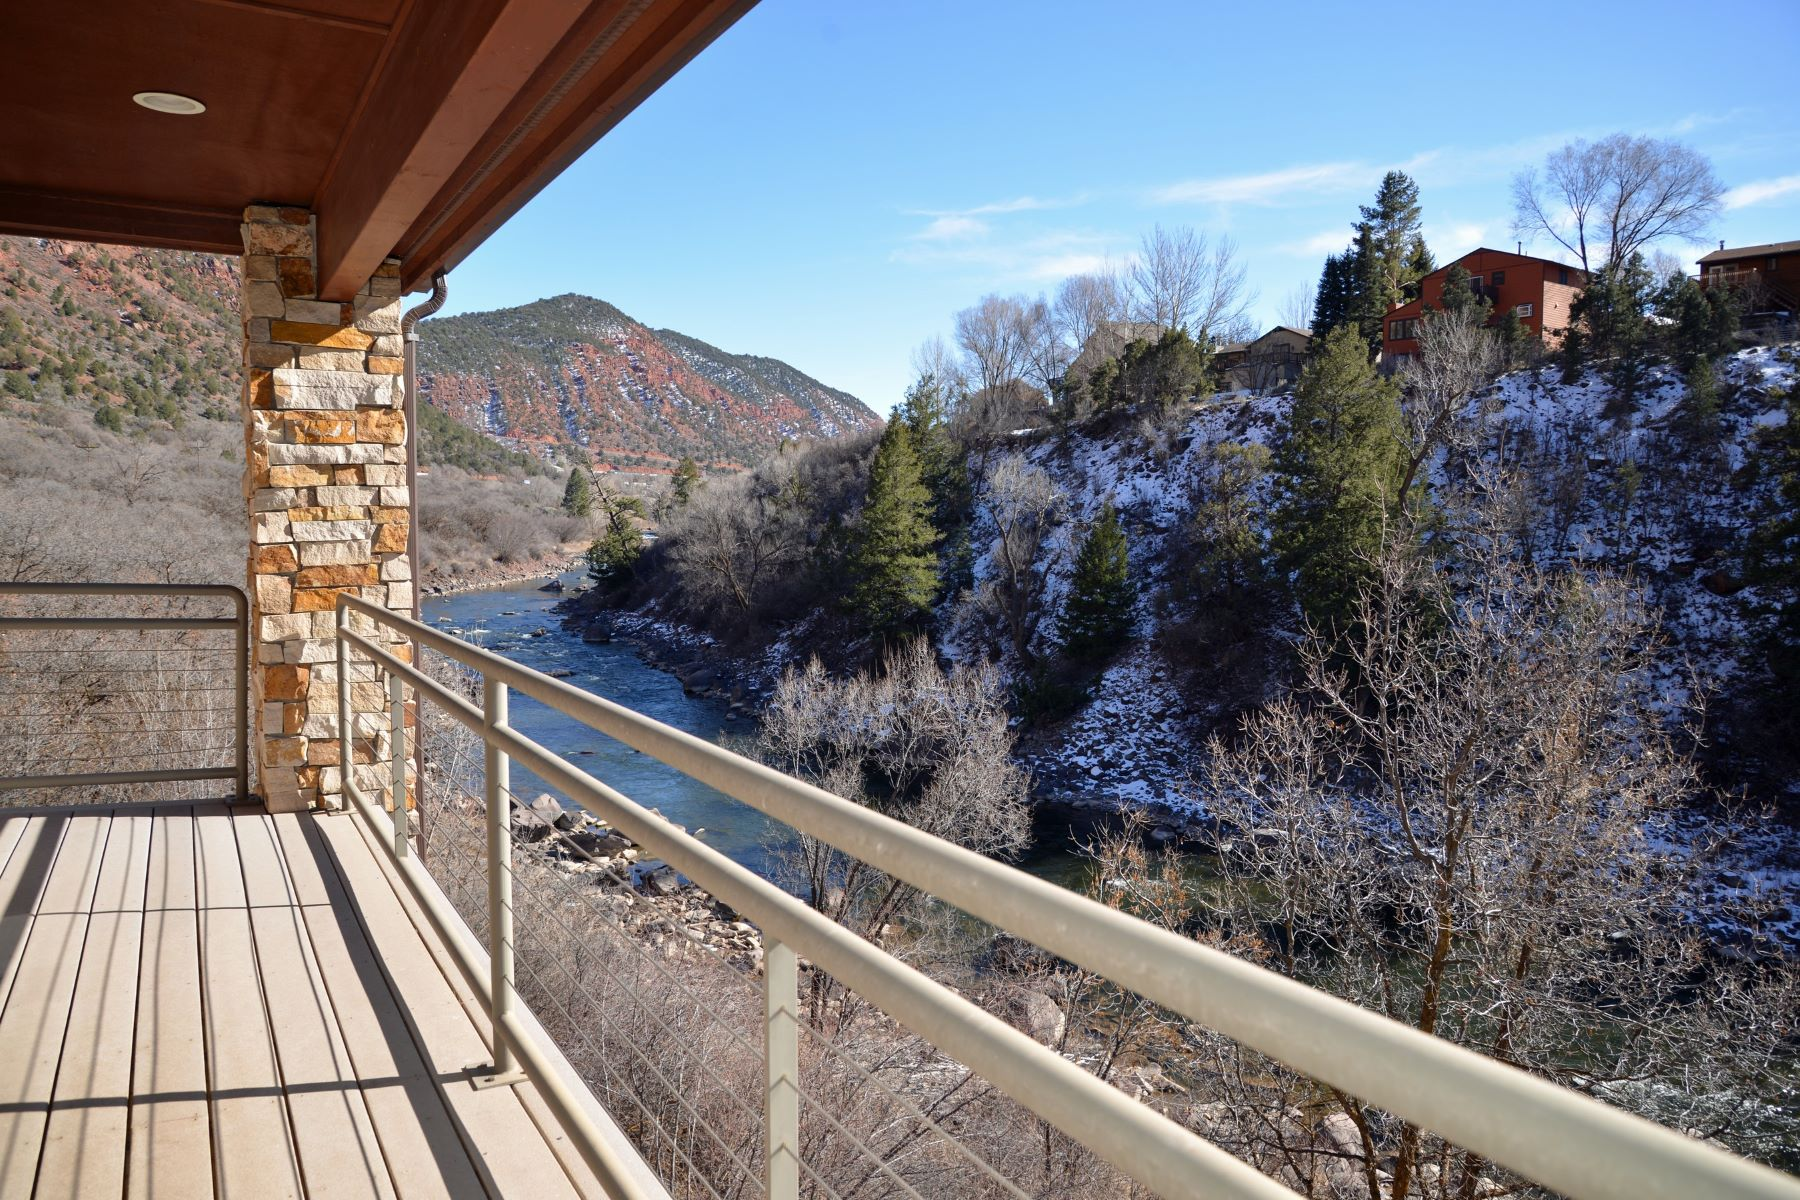 Casa Unifamiliar por un Venta en Private Home on the Roaring Fork River 1601 County Road 154 Glenwood Springs, Colorado, 81601 Estados Unidos